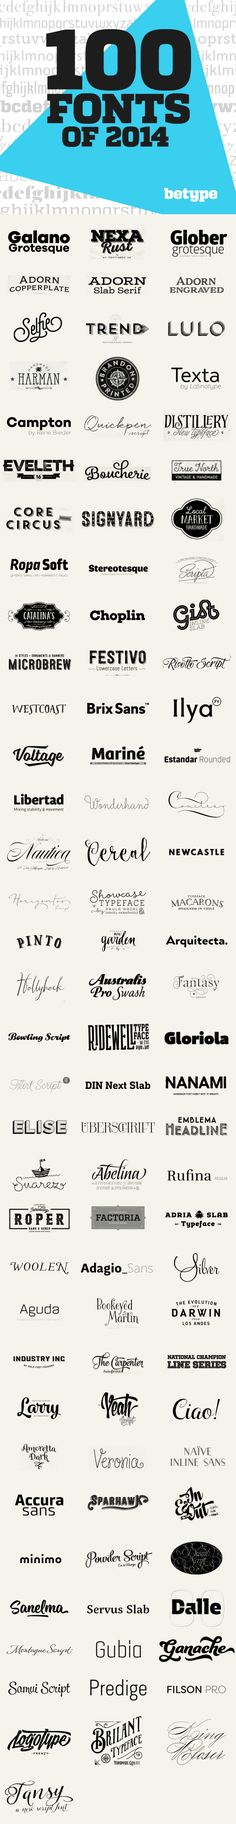 100 Best Fonts of 2014 via http://fontsoftheyear.com